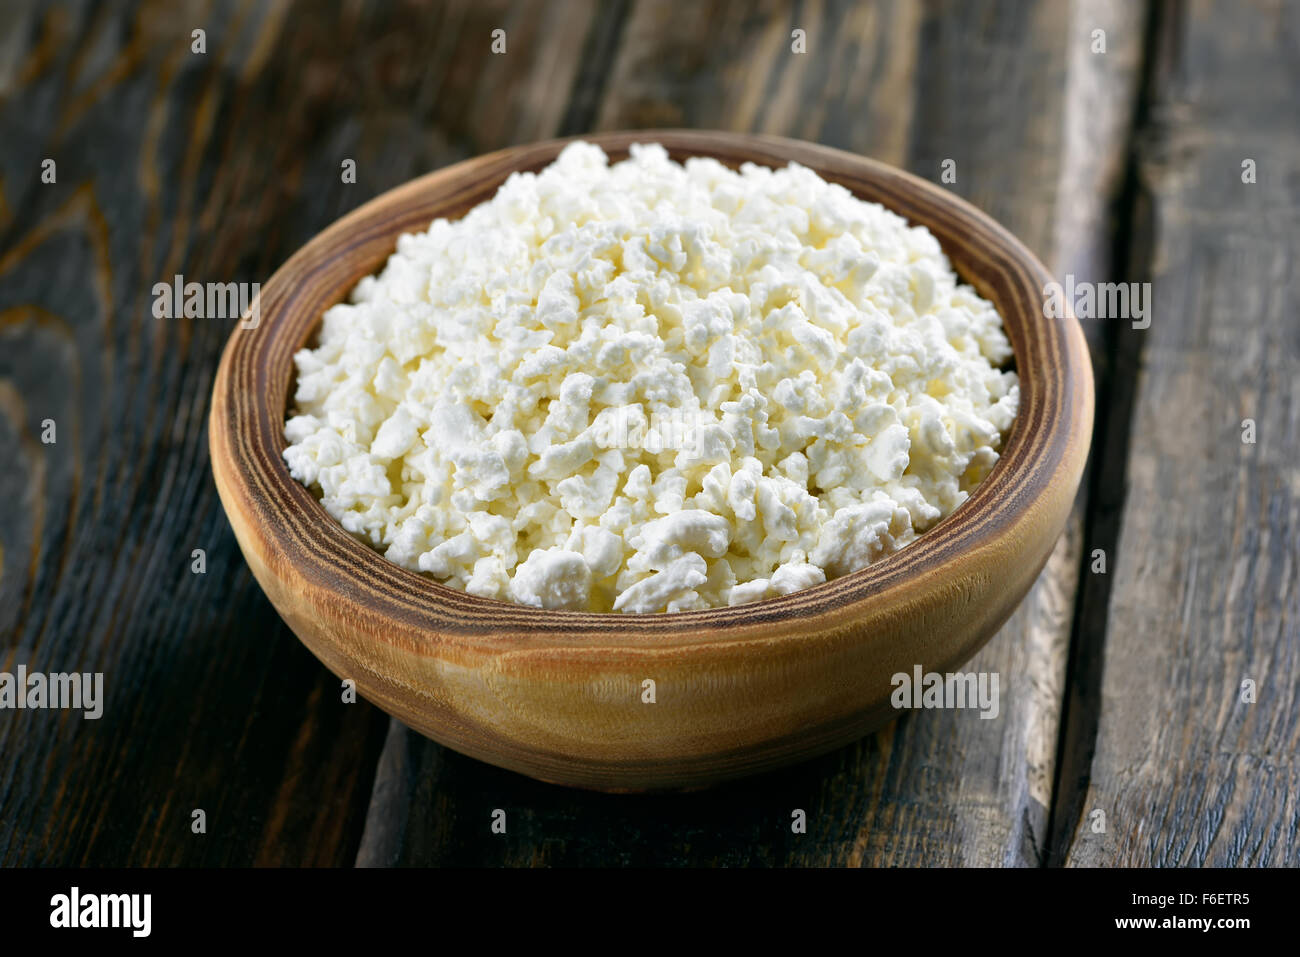 Curd in bowl on wooden table, close up view - Stock Image